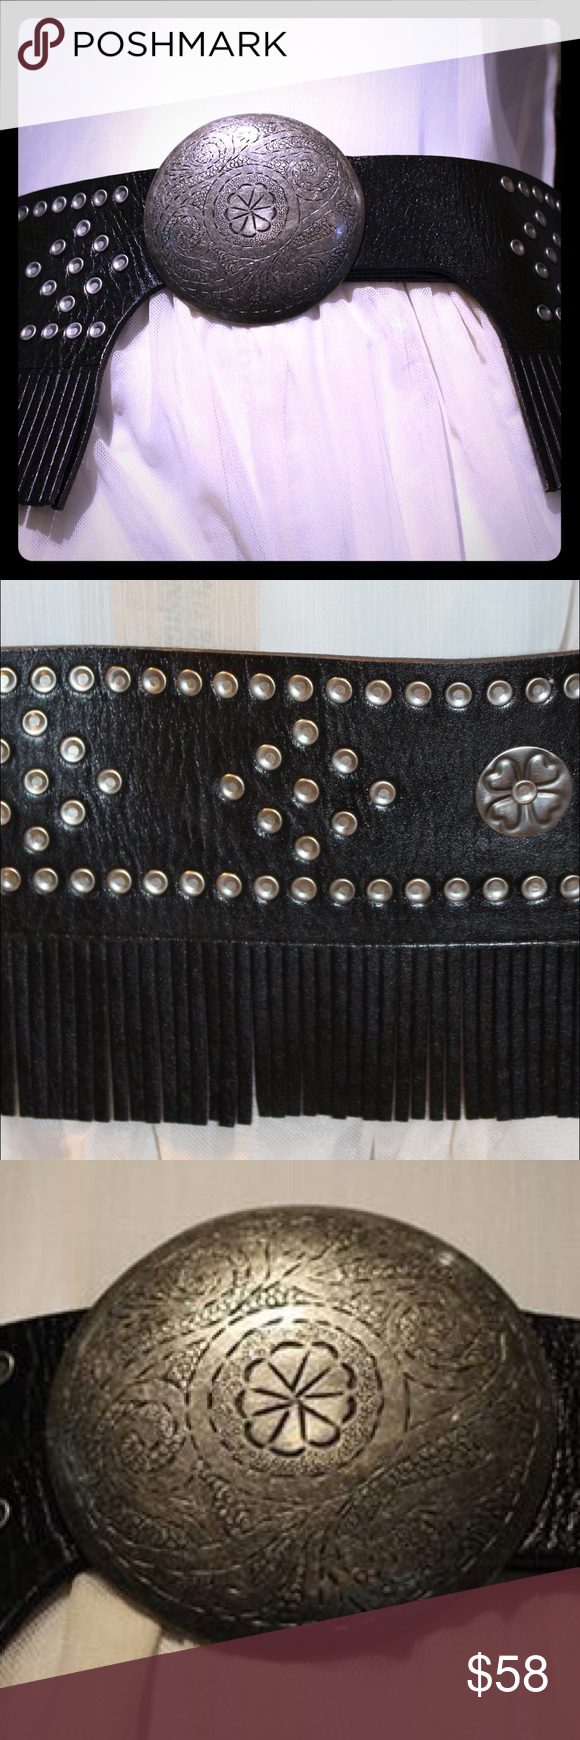 Free People Fringe Belt ✌🏻️ Excellent condition Fringe detail Silver hardware detail 6 adjustable belt holes - price firm no trades - buy for less at www.chicboutiqueconsignments.com! Free People Accessories Belts